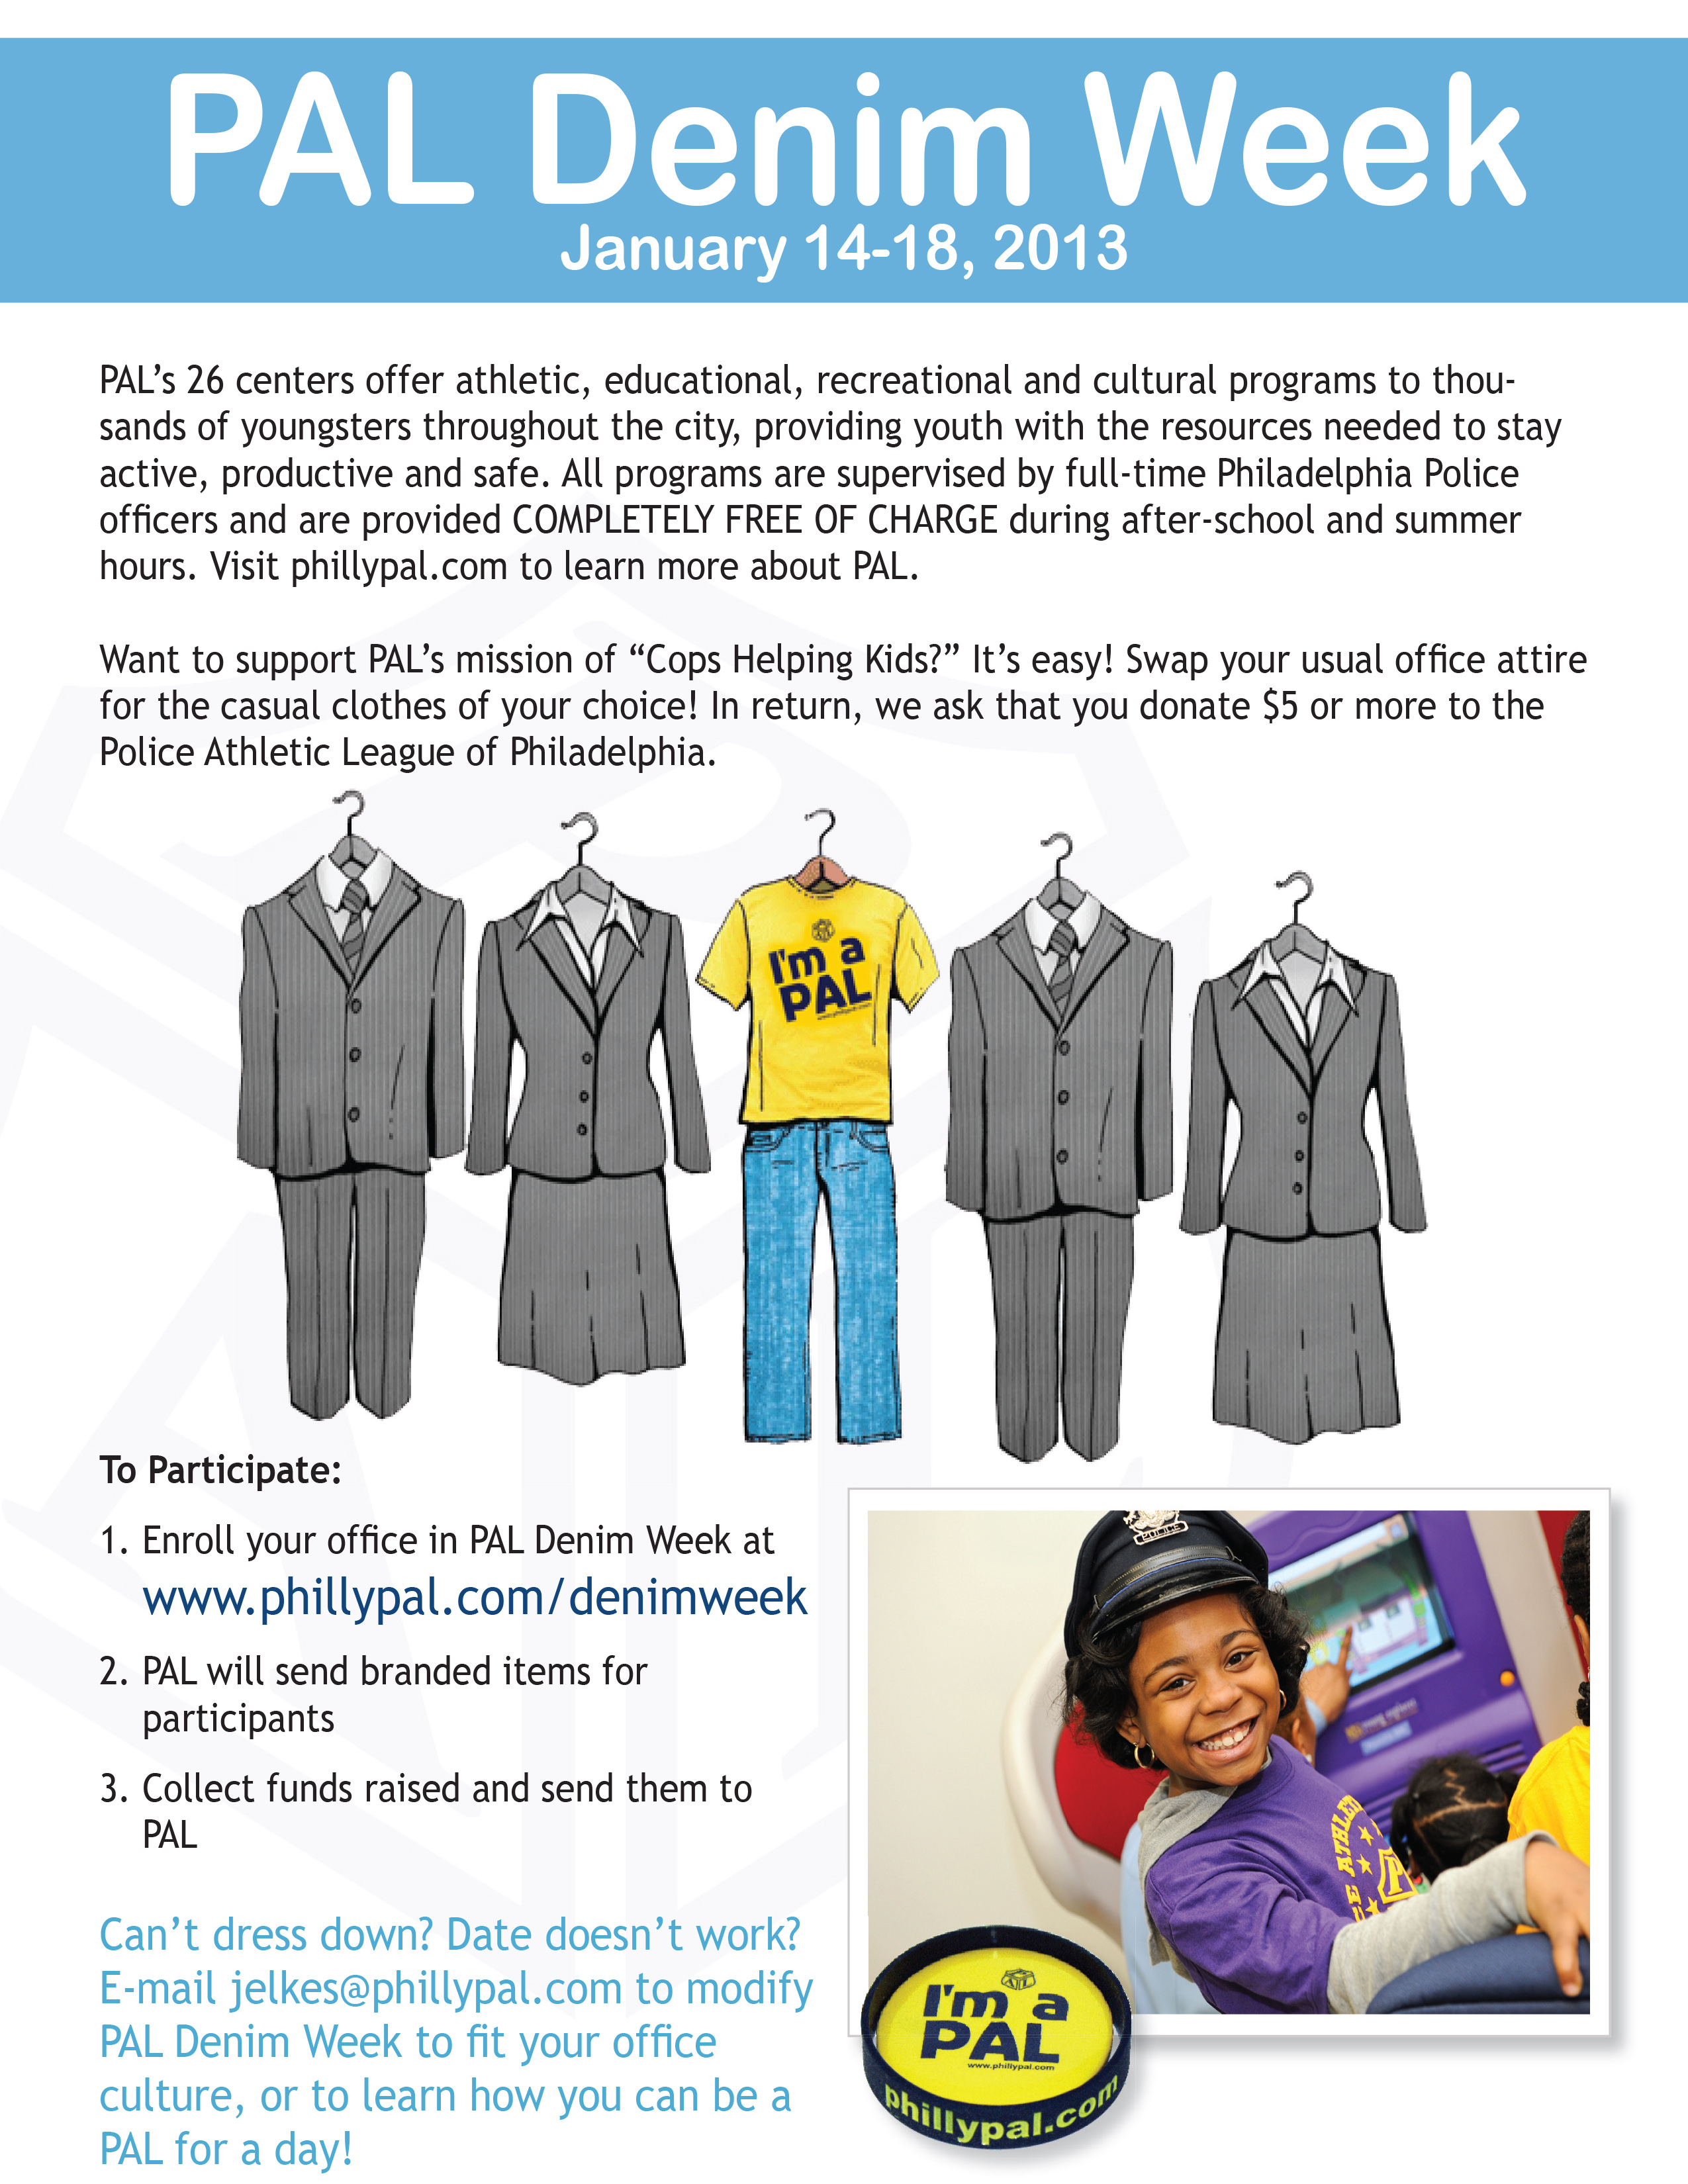 2013 PAL Denim Week